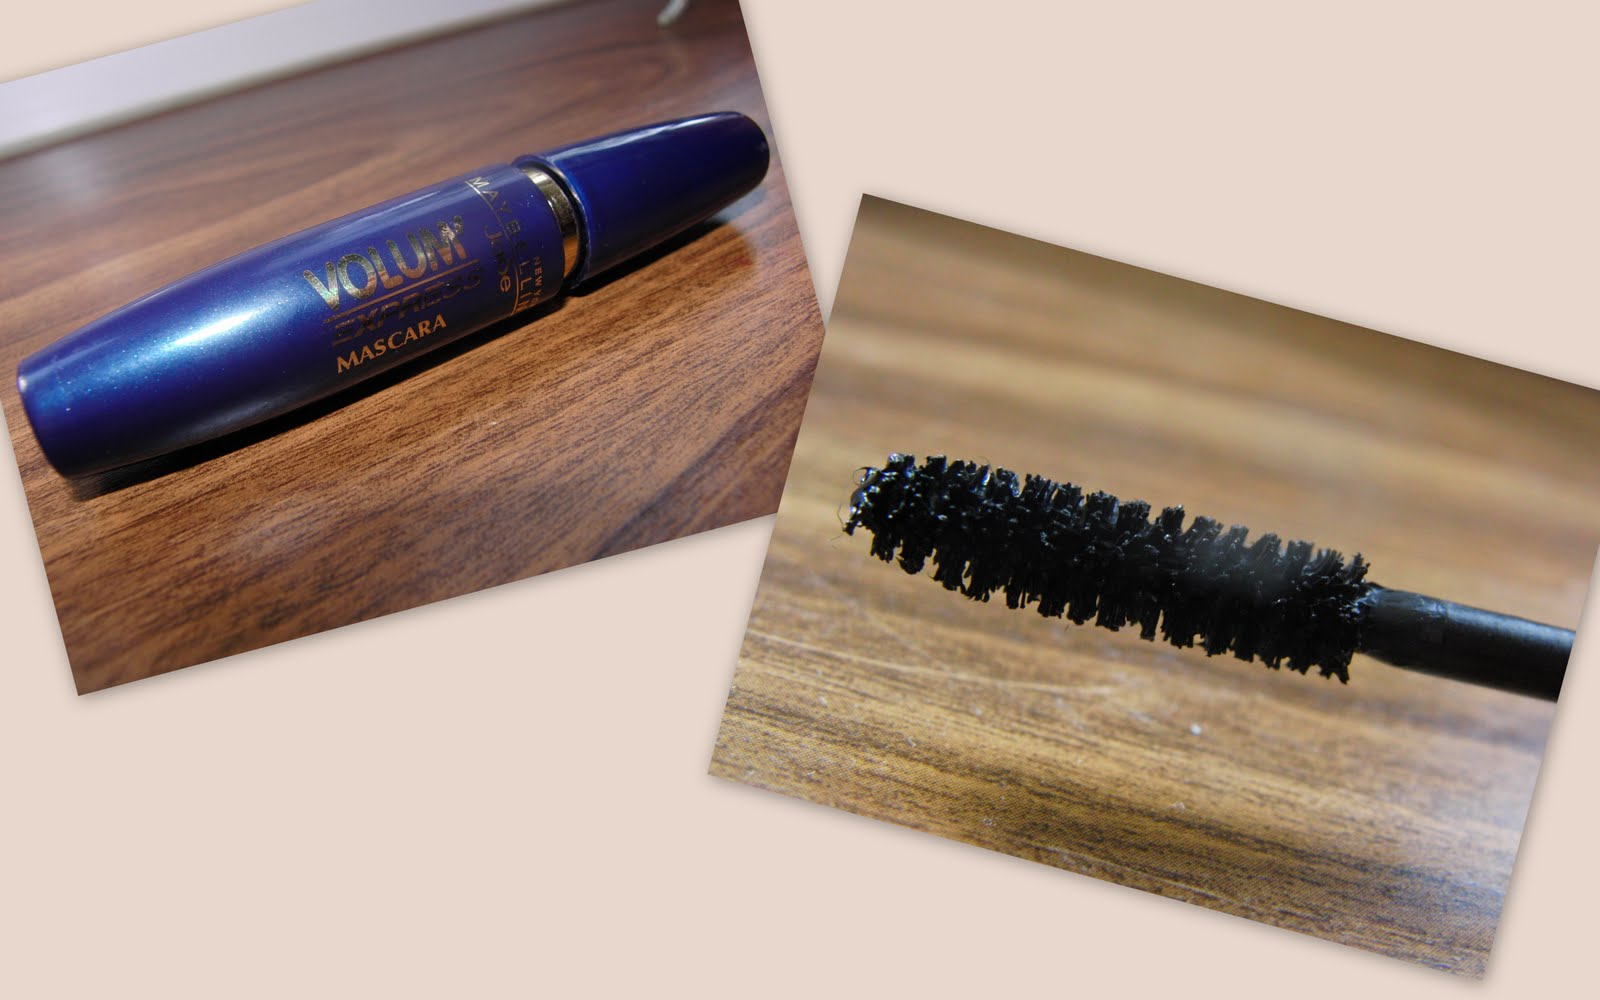 Our beauty garden review serie mascara maybelline jade for Gardening express reviews